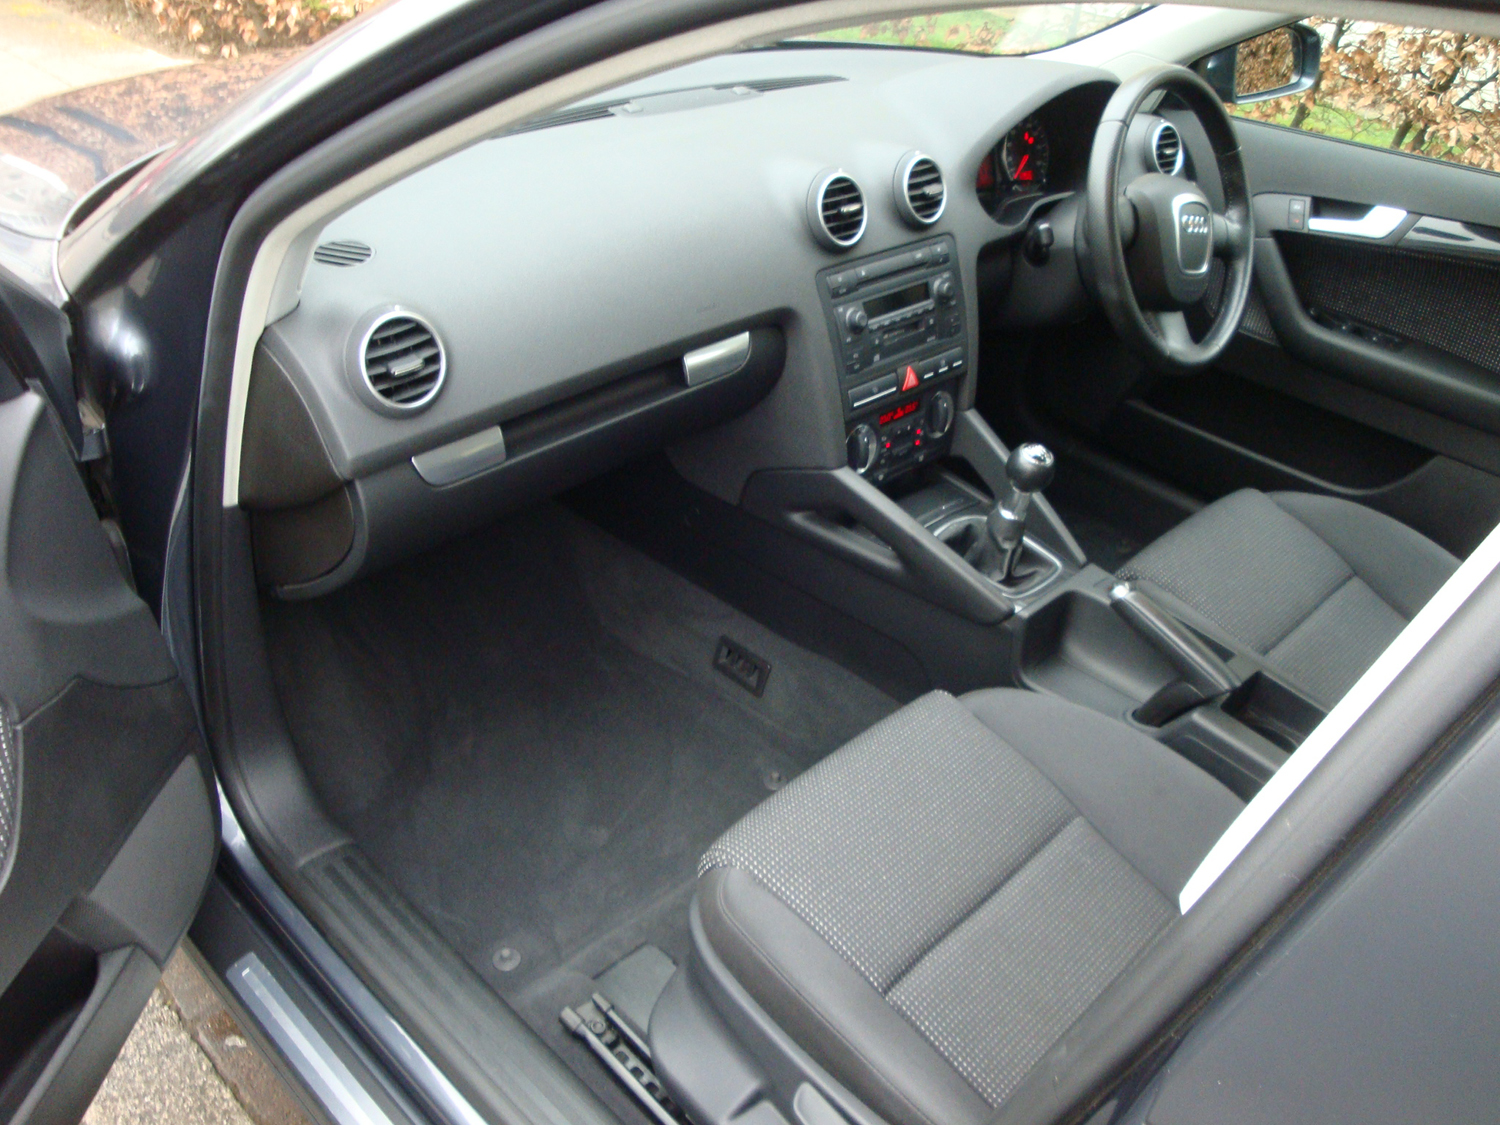 Audi A3 Interior After Surrey Shine Car Valet